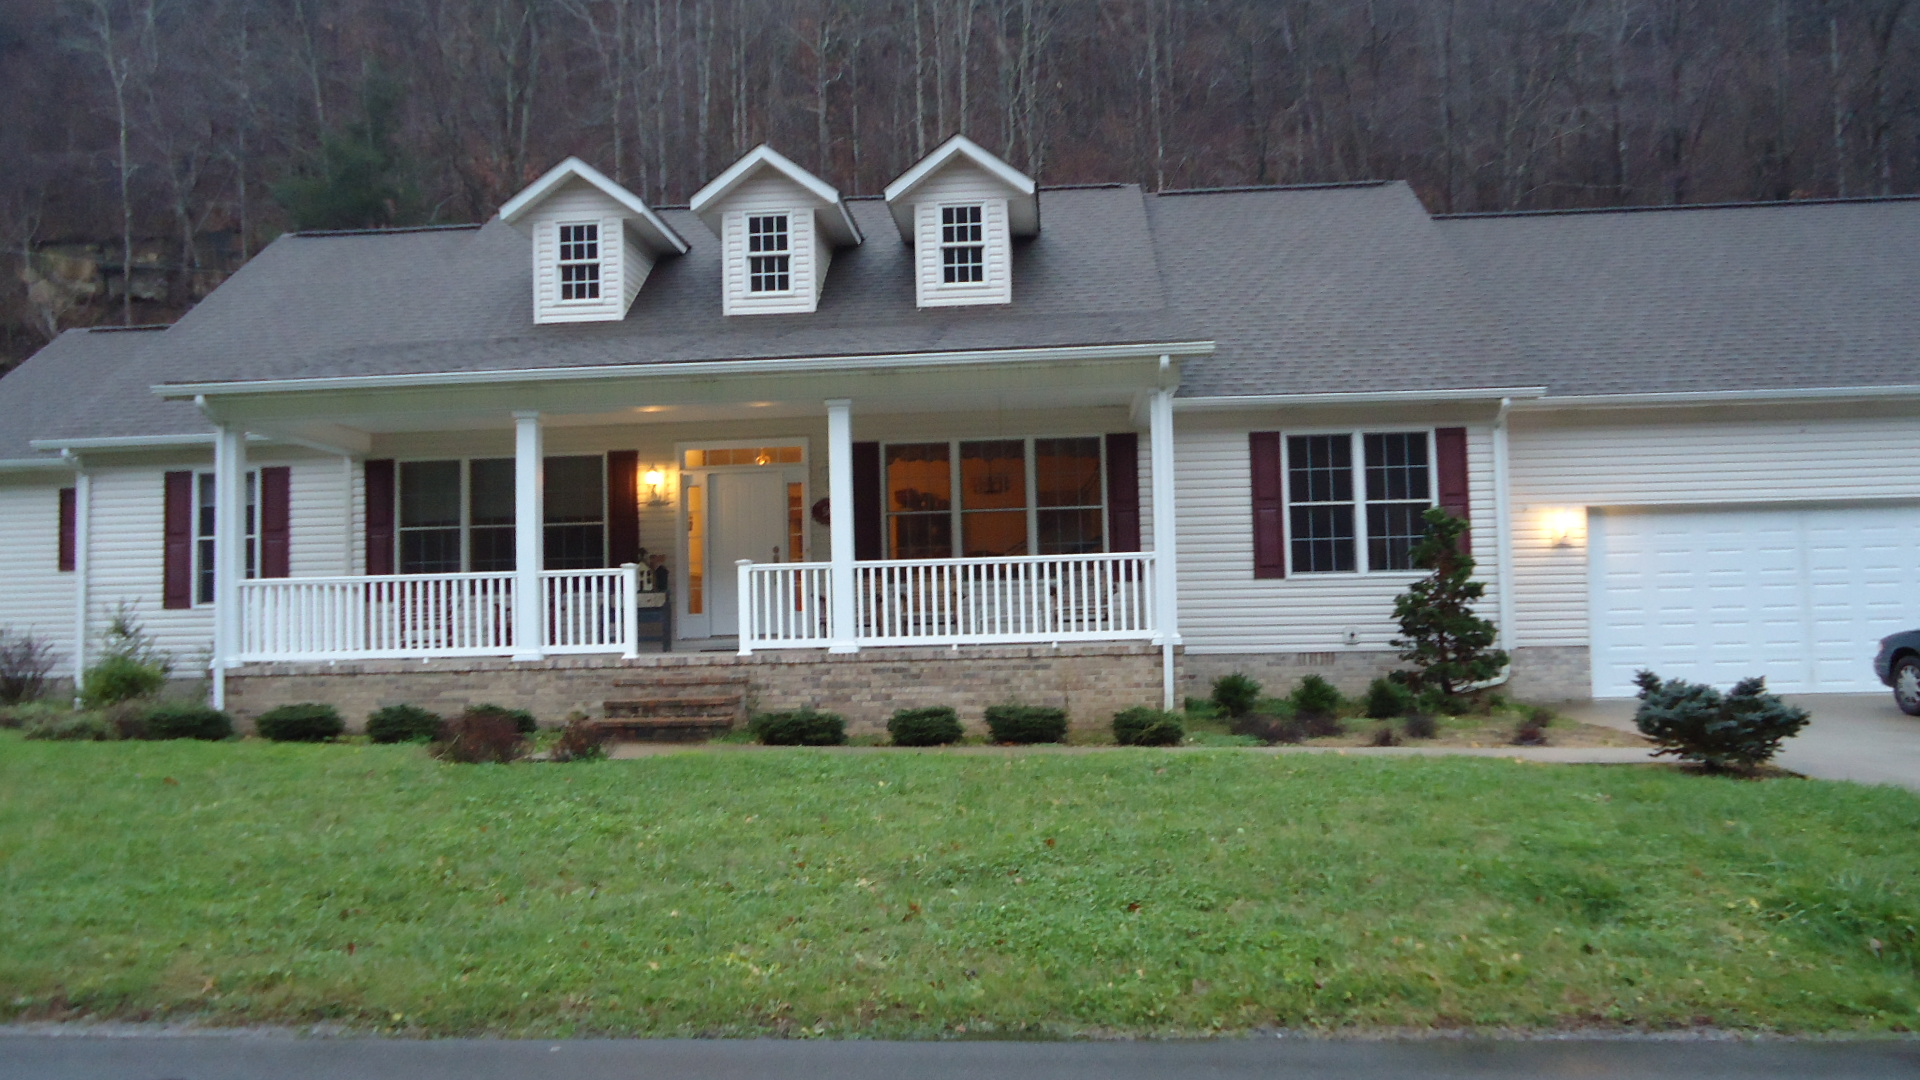 504 Accovile Hollow Road, Accoville, West Virginia 25606